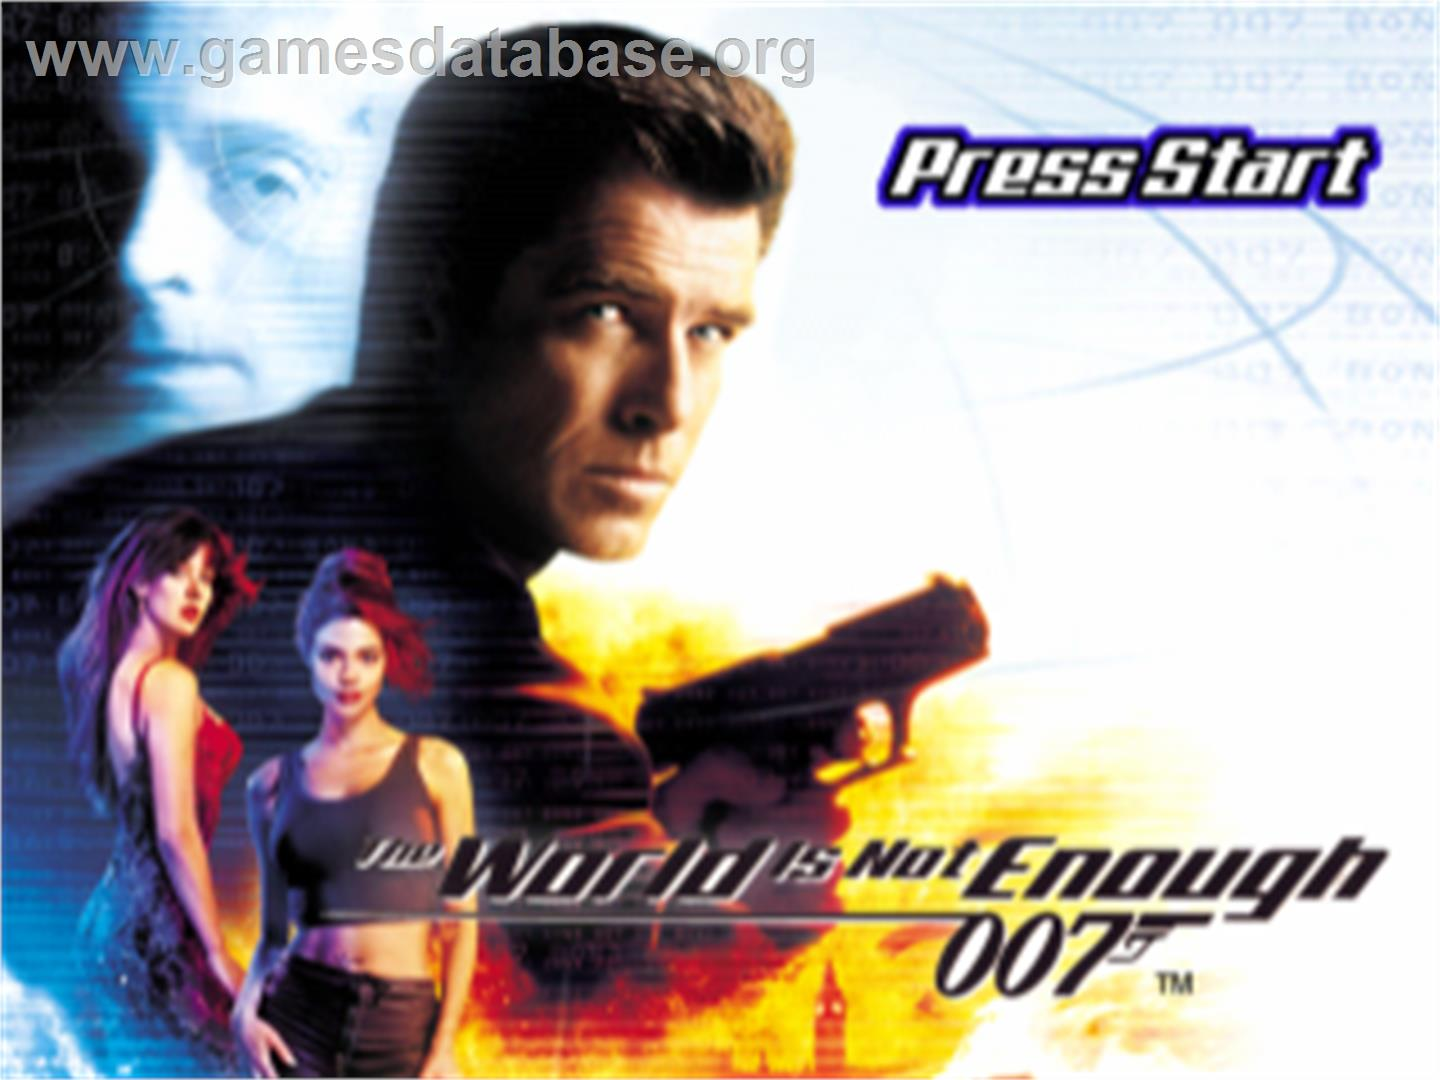 007: The World is Not Enough - Sony Playstation - Artwork - Title Screen